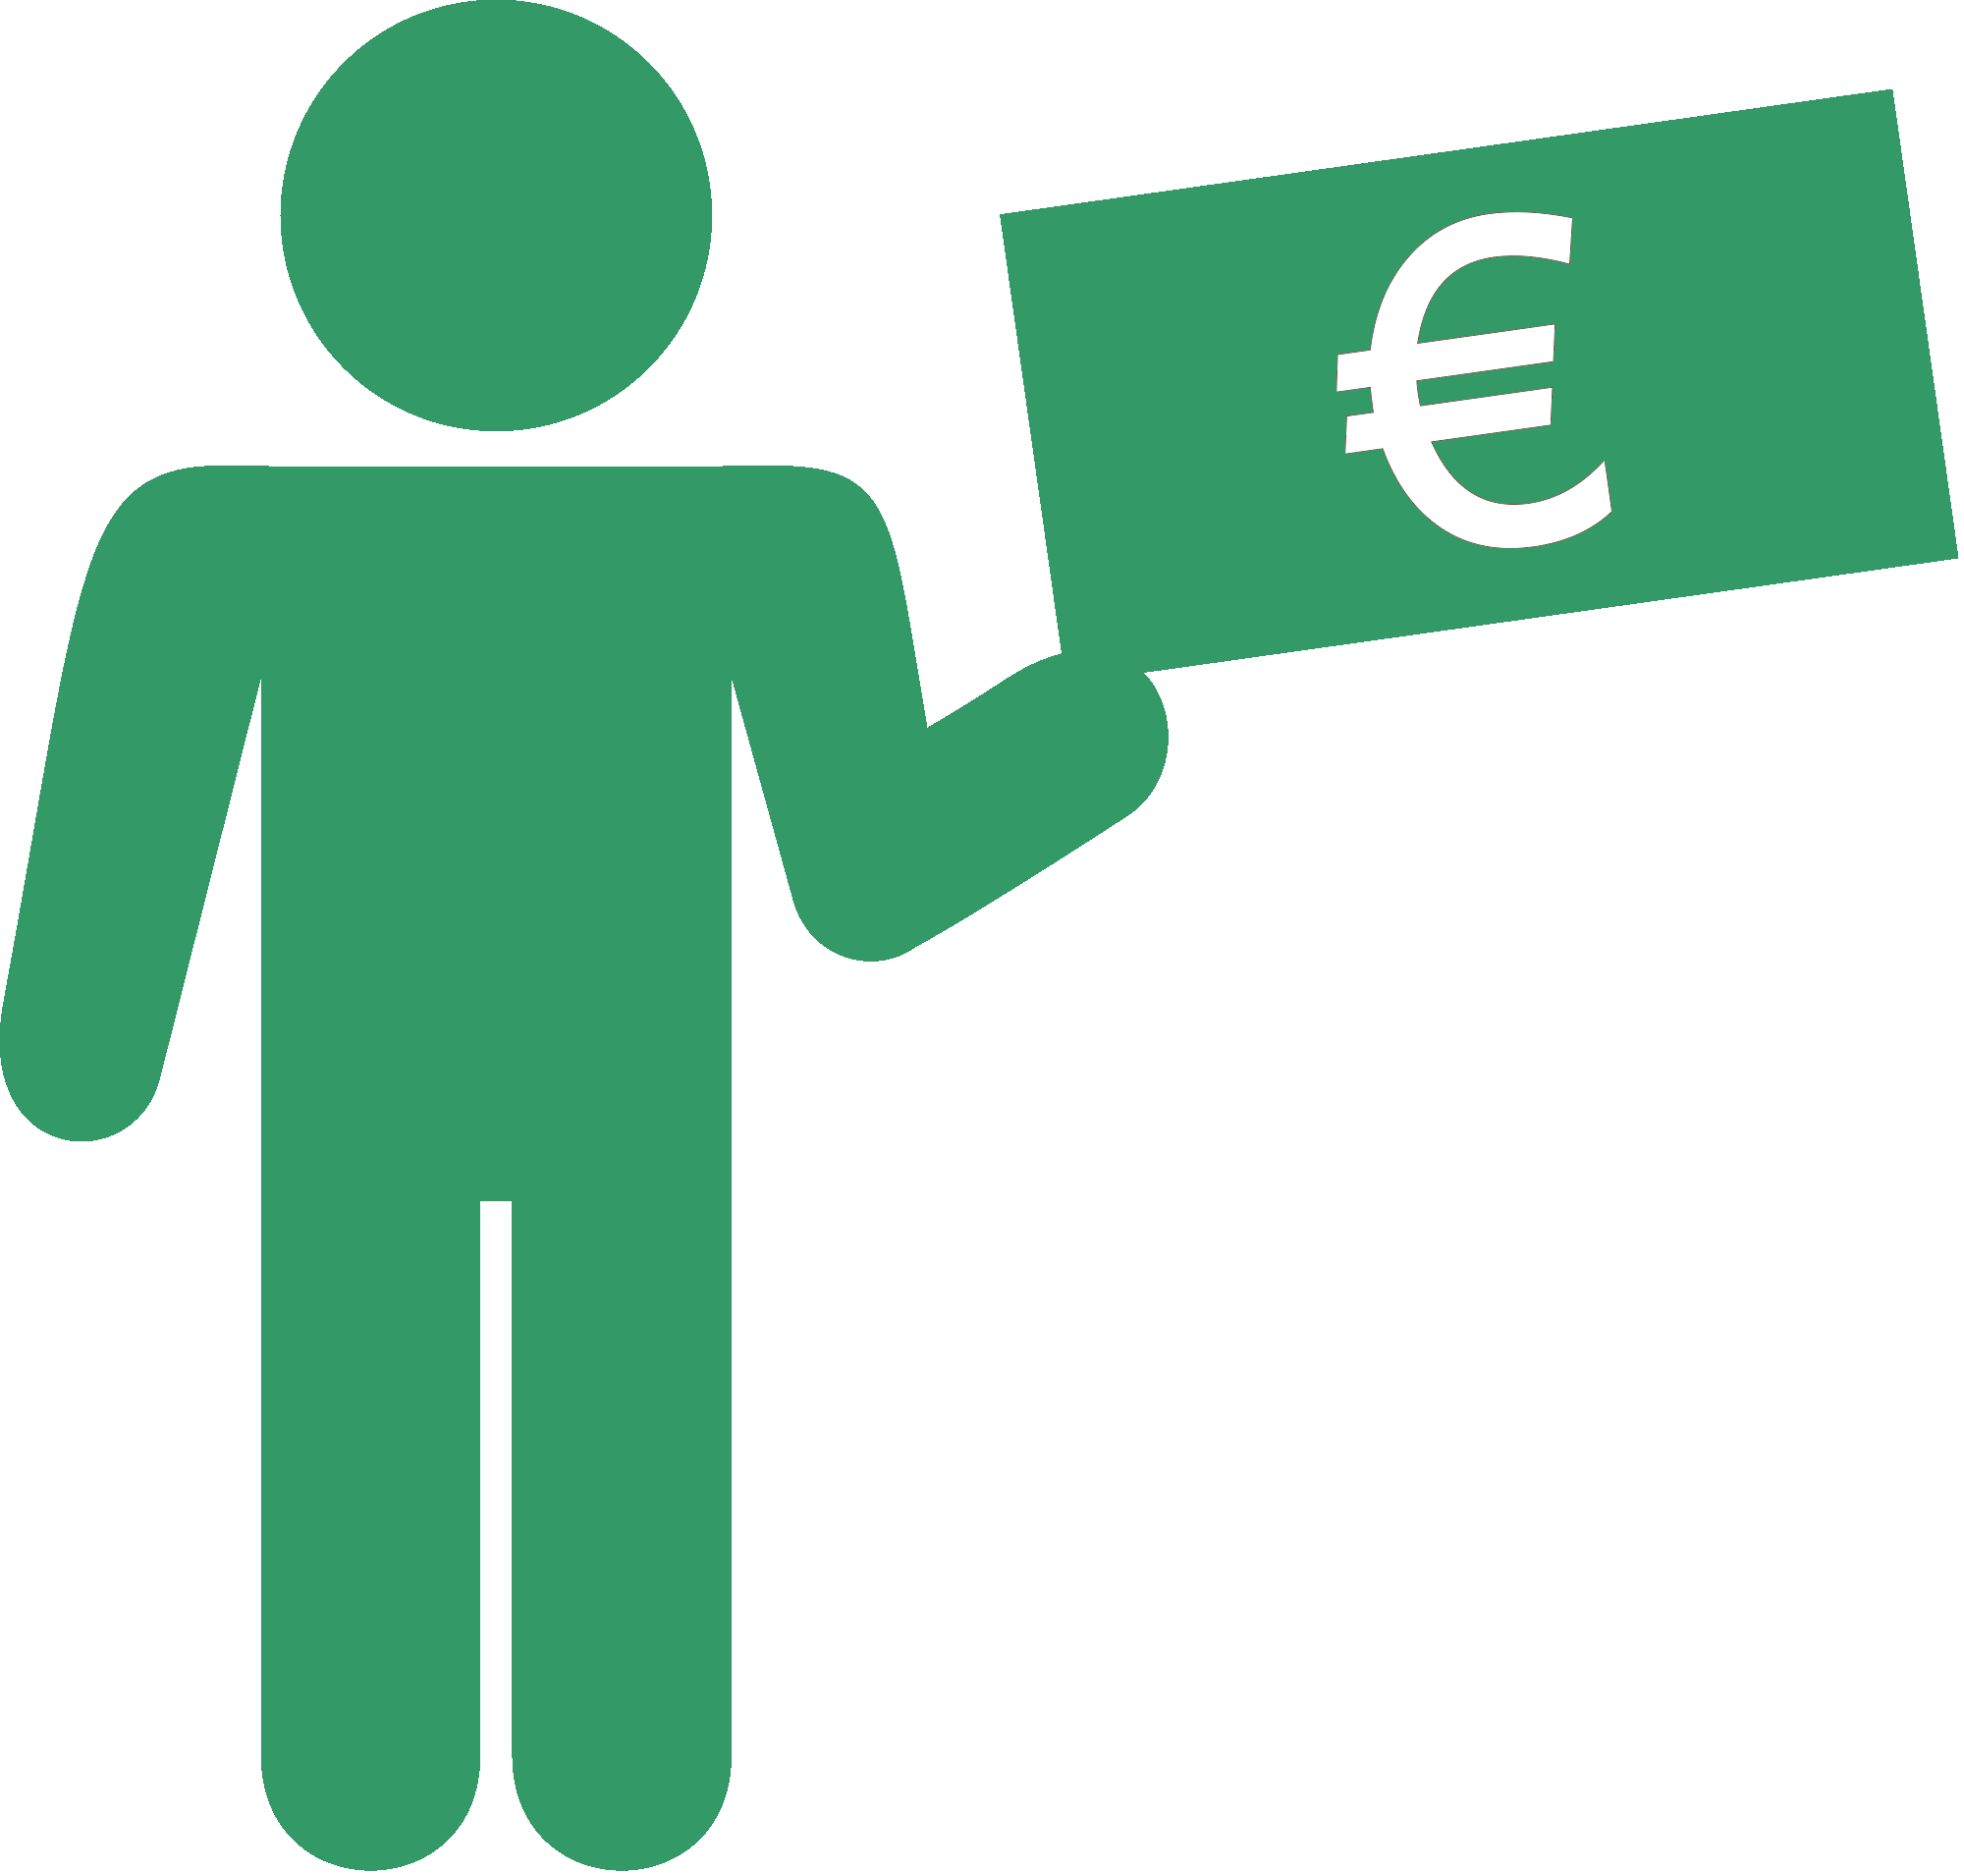 File:Wikimedia Deutschland icon donate green.png - PNG Donation